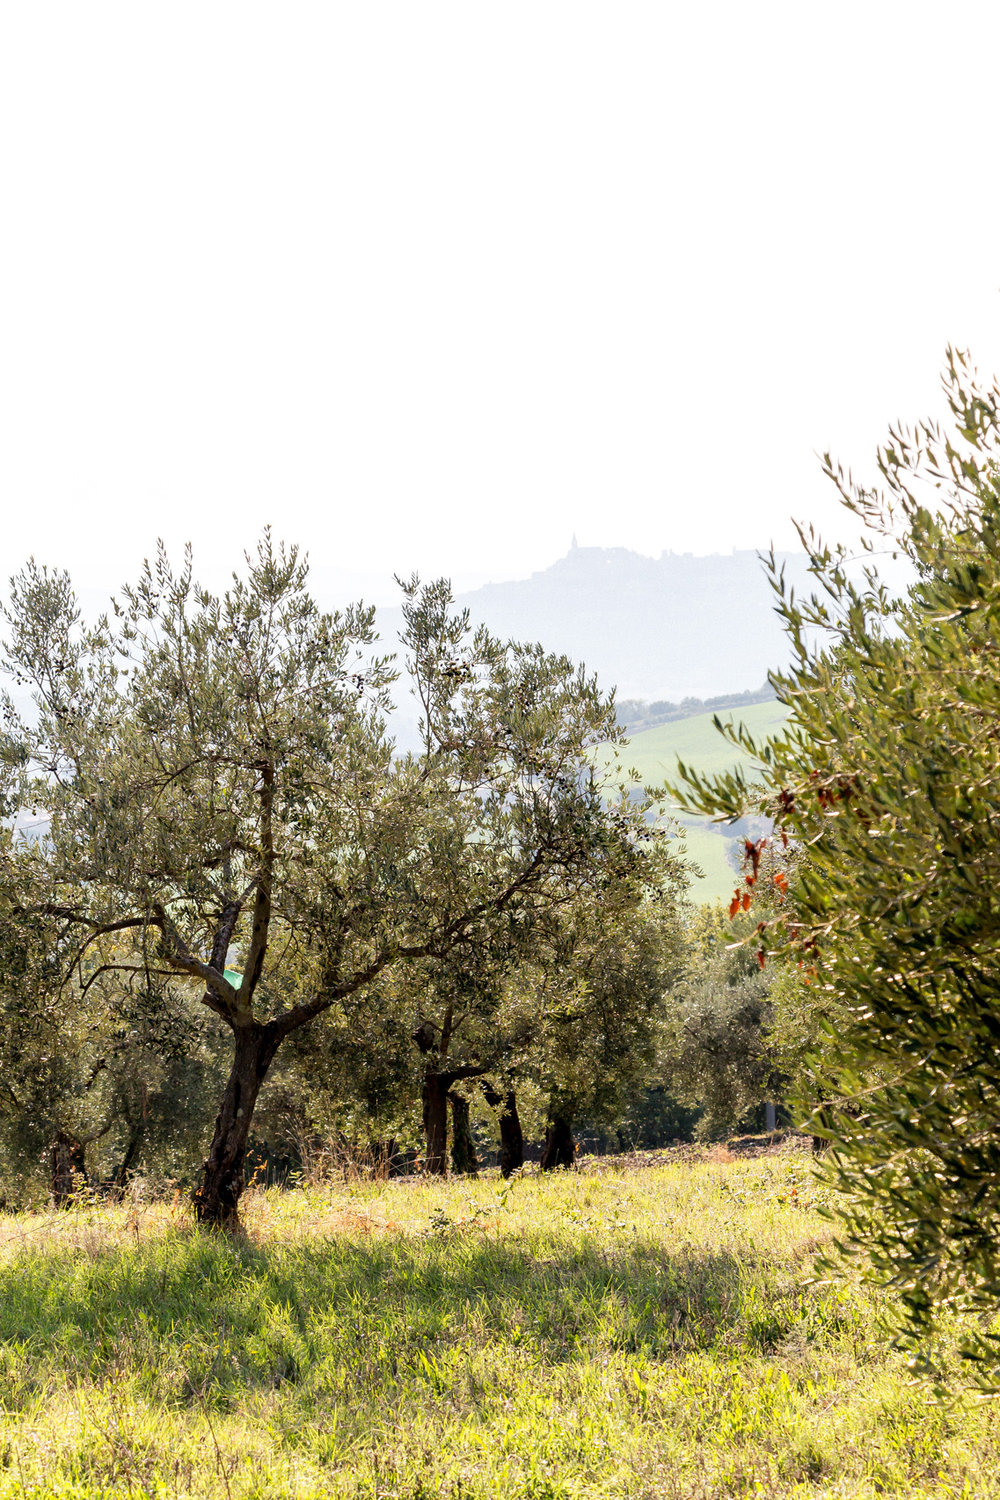 Olive groves around Todi, Umbria